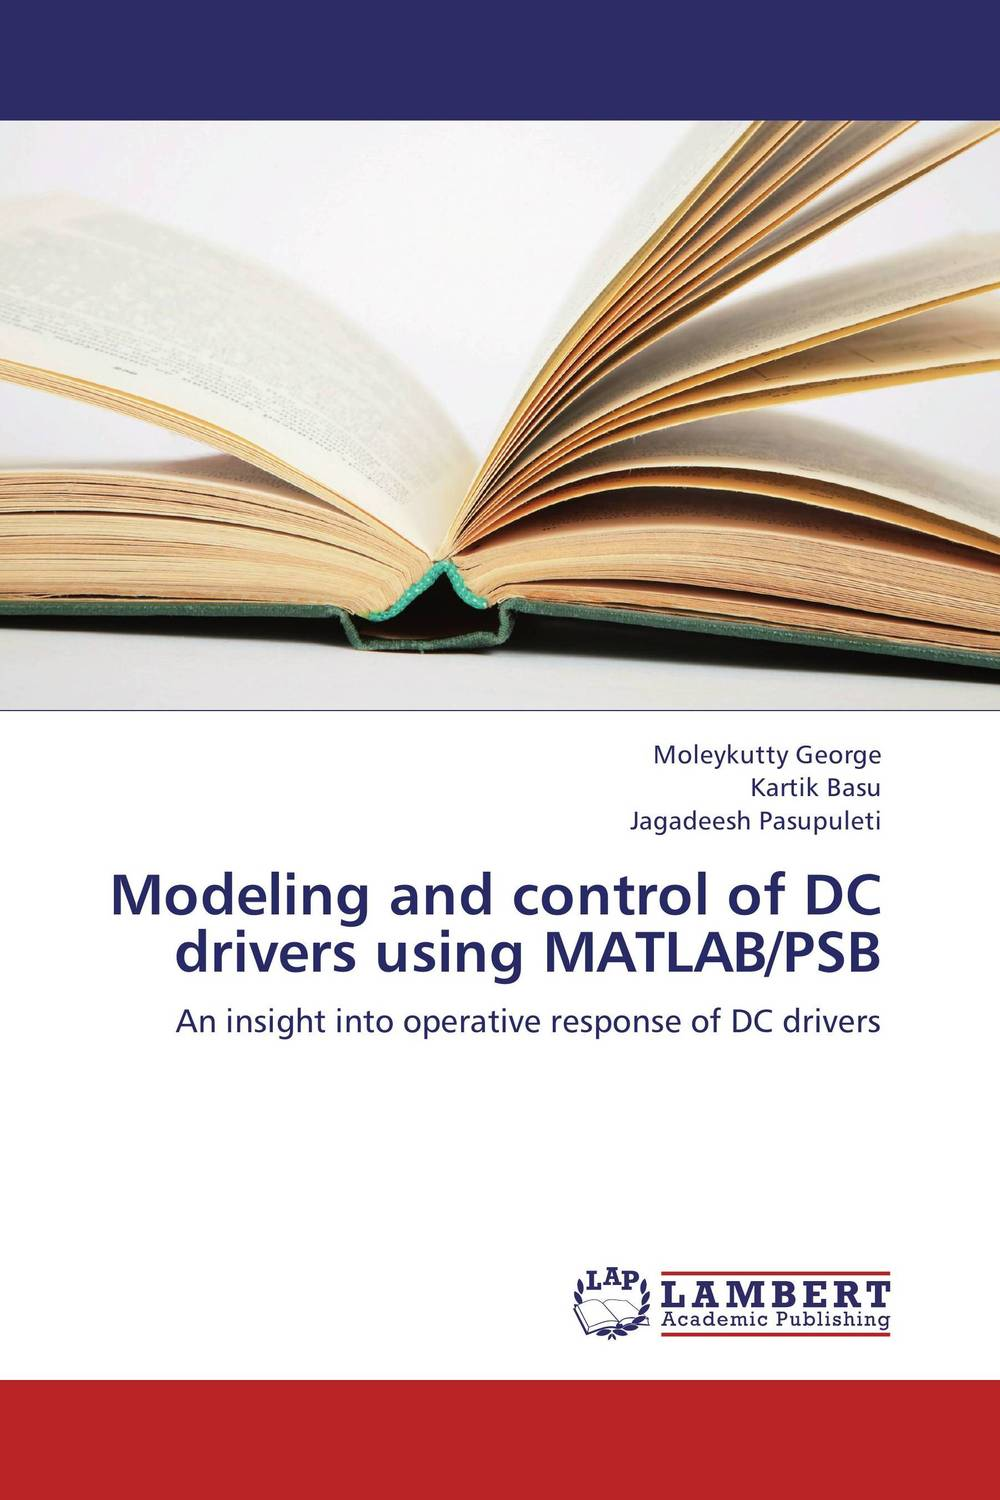 Modeling and control of DC drivers using MATLAB/PSB